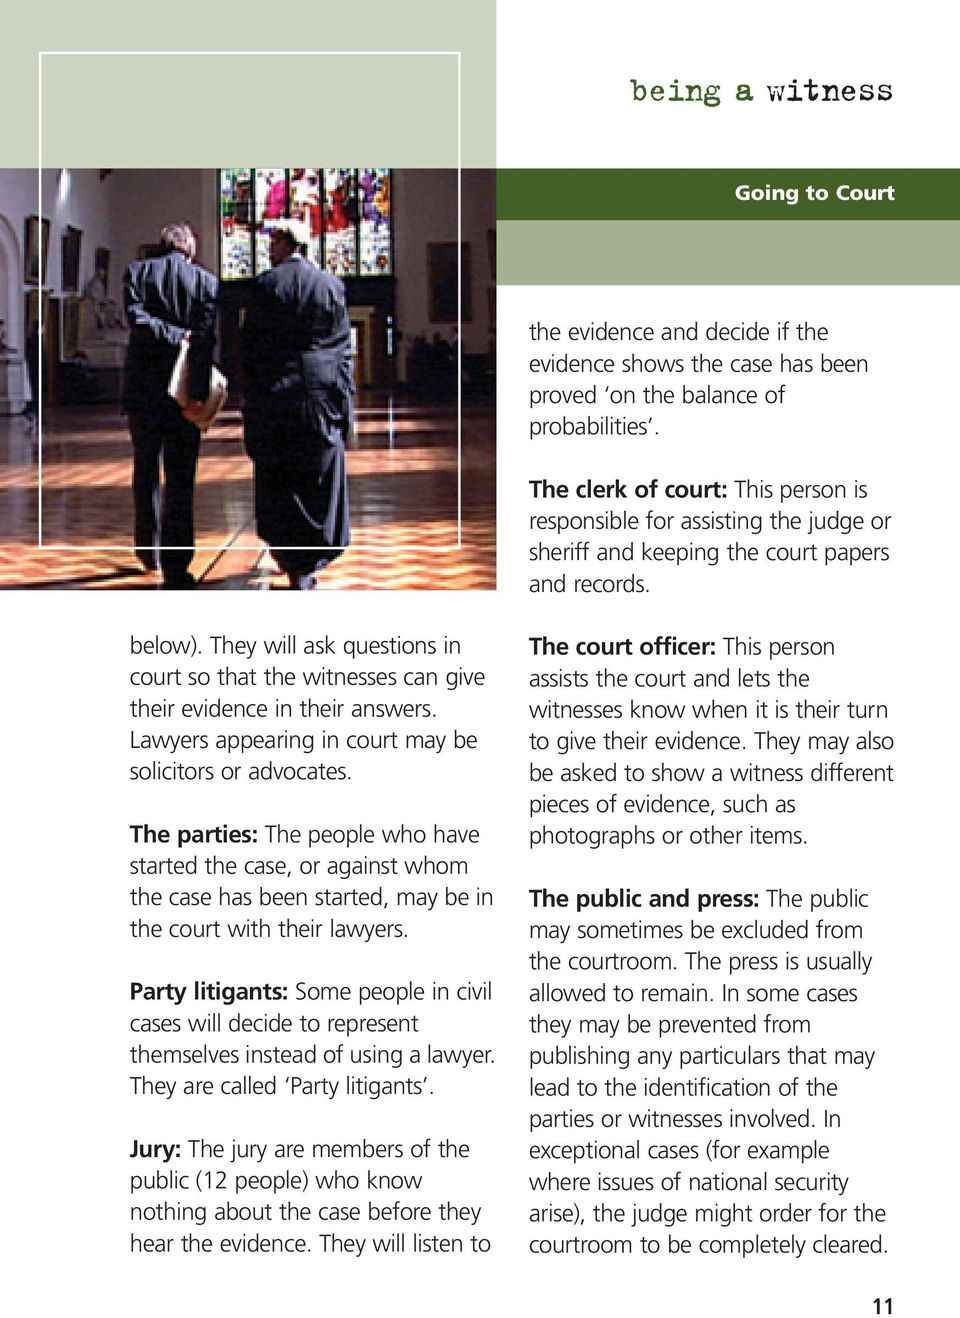 They will ask questions in court so that the witnesses can give their evidence in their answers. Lawyers appearing in court may be solicitors or advocates.